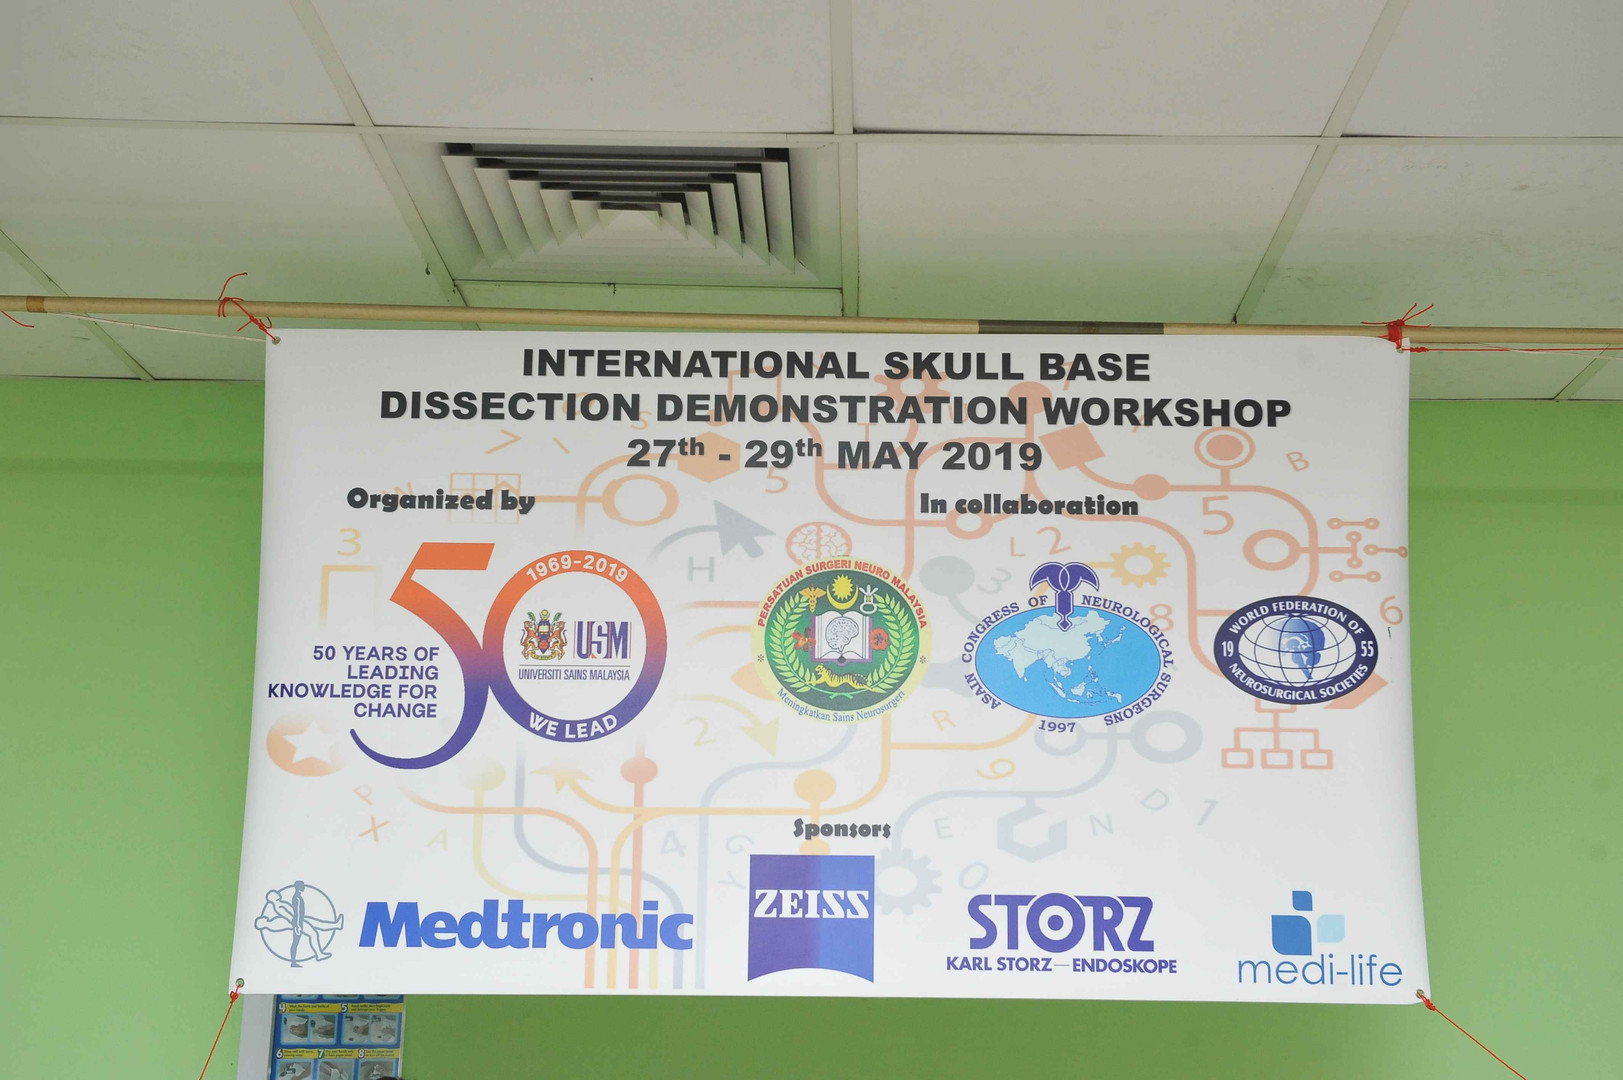 International Skull Base Dissection Demonstration Workshop 2019